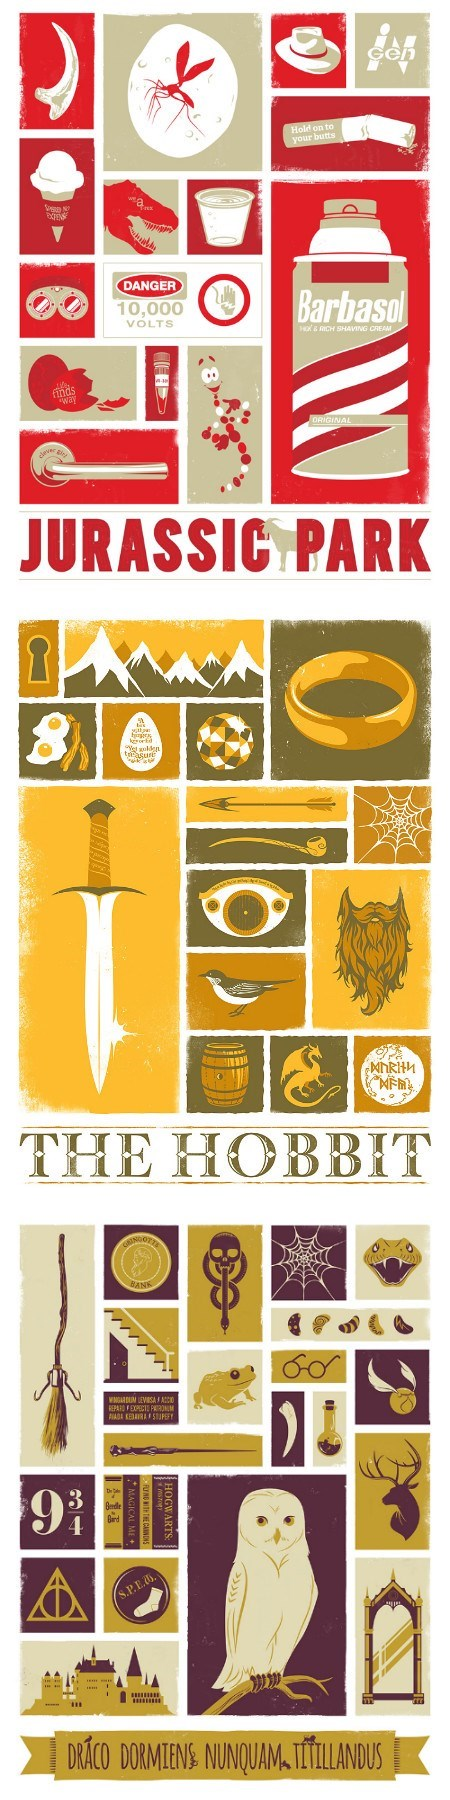 Harry Potter Lord of the Rings posters jurassic park